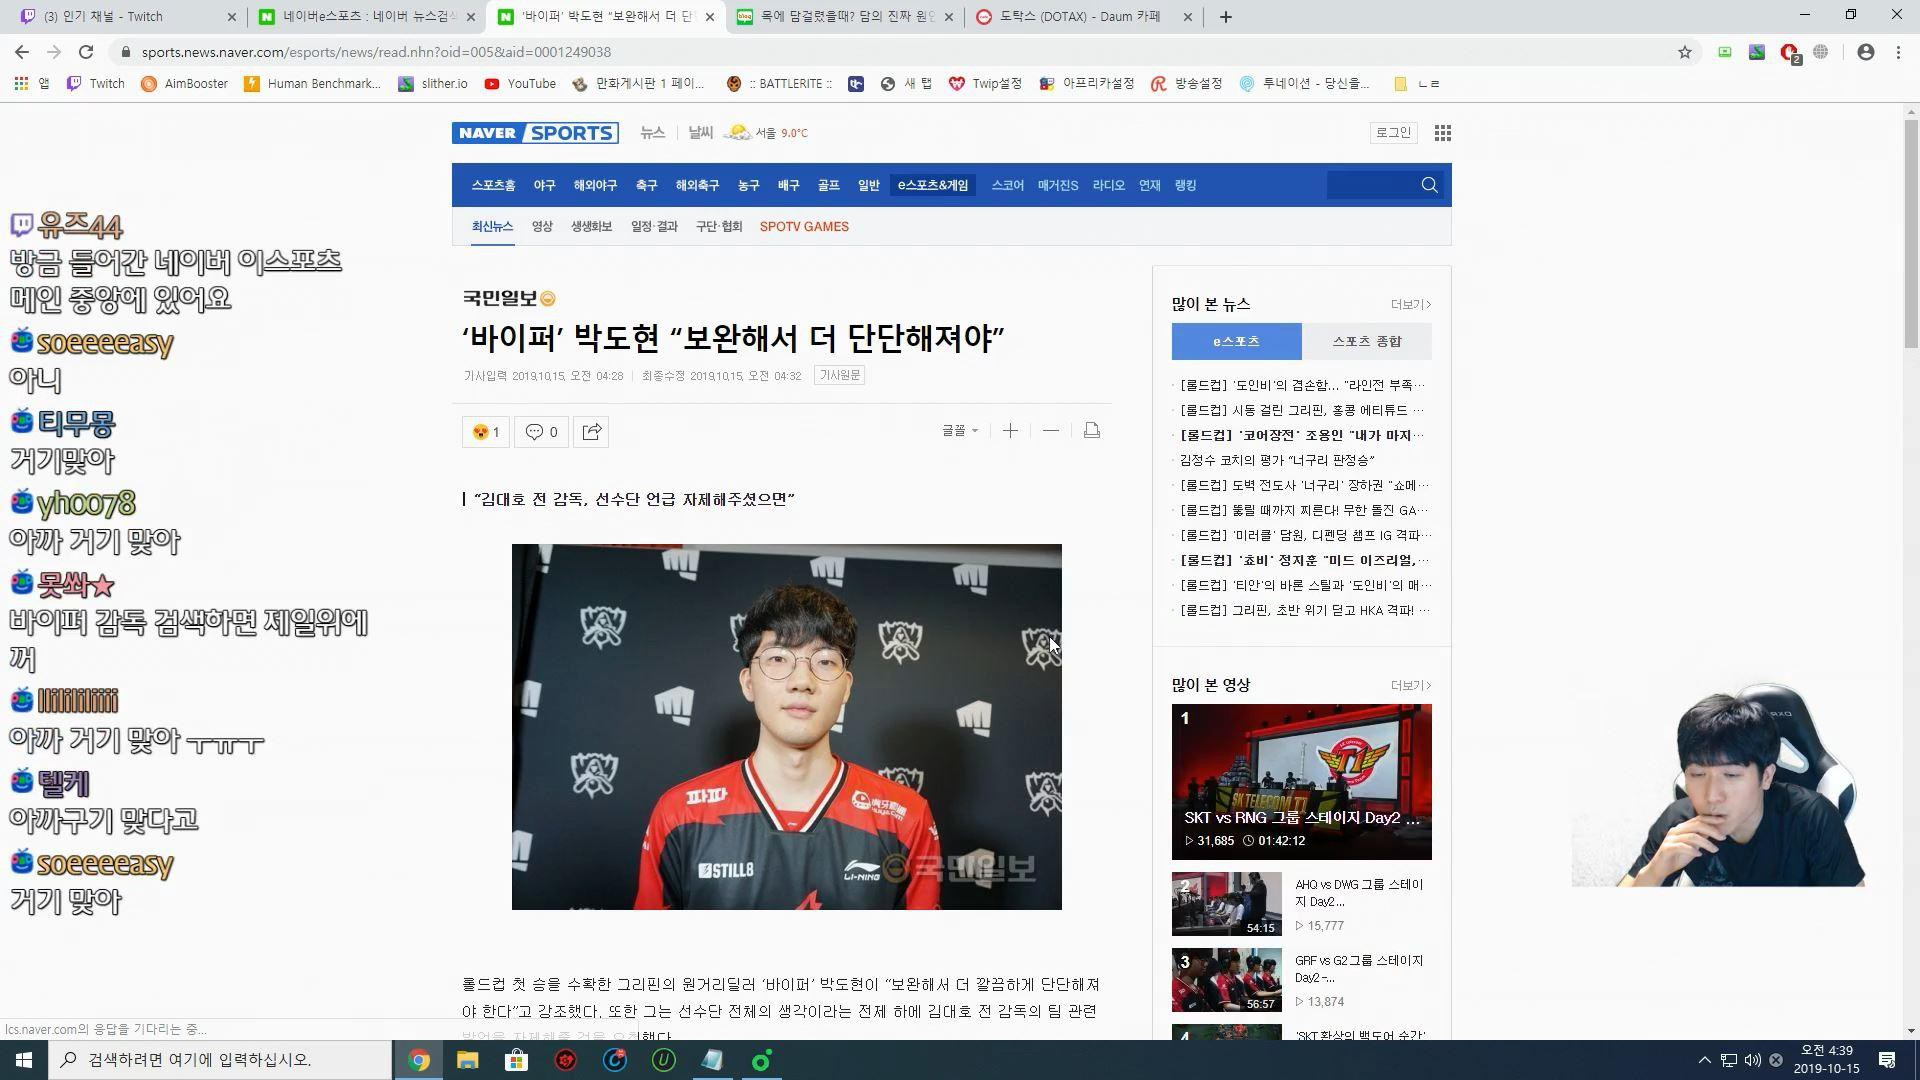 Griffin-cvMax-Viper-Interview-Naver-2019-Worlds